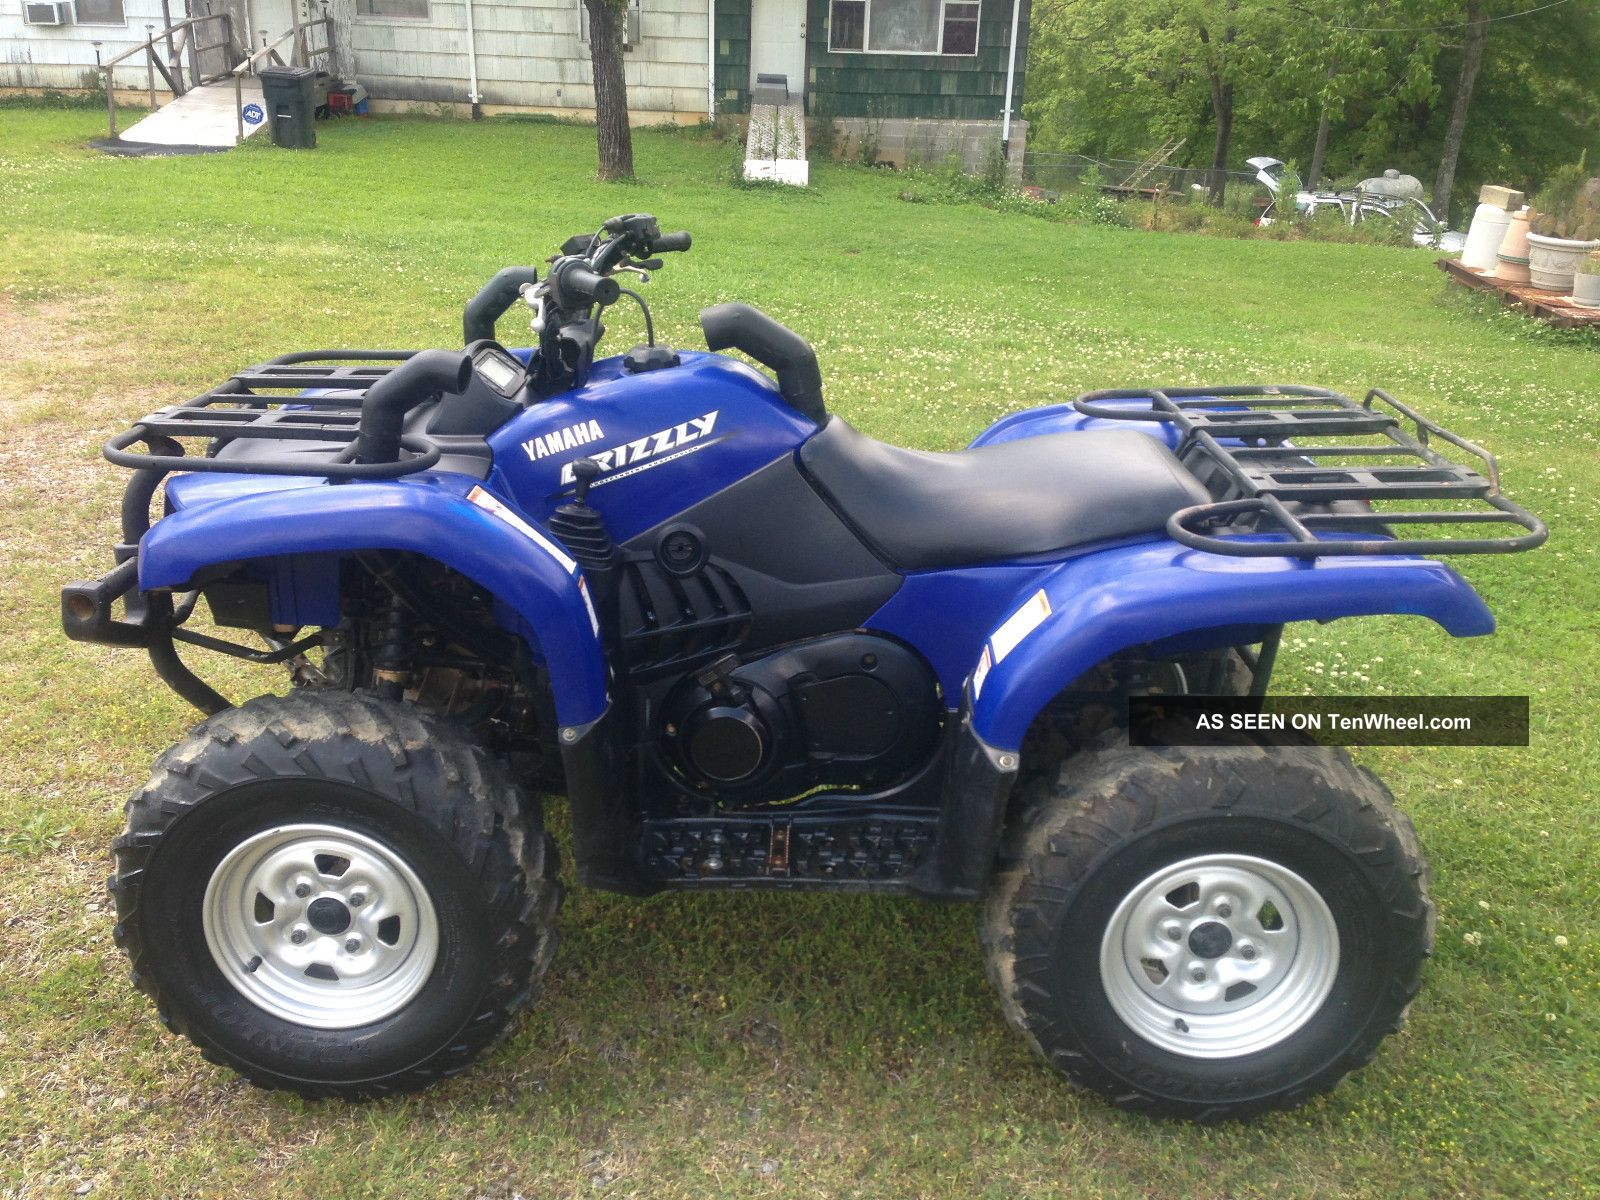 Yamaha Grizzly 660 >> 2006 Yamaha Grizzly 660 4x4